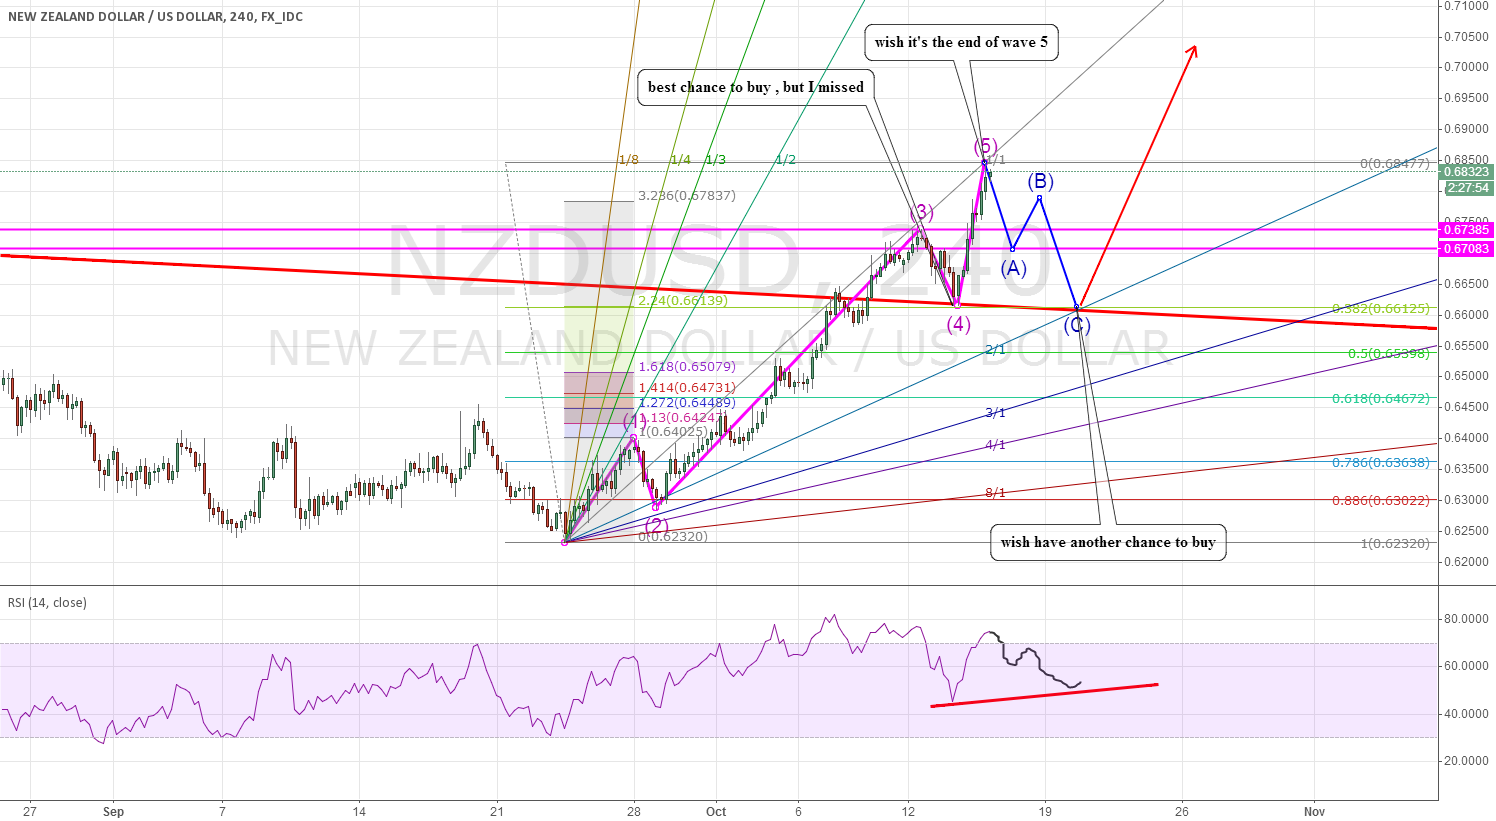 NZDUSD: I am a day dreamer,wish have another chance